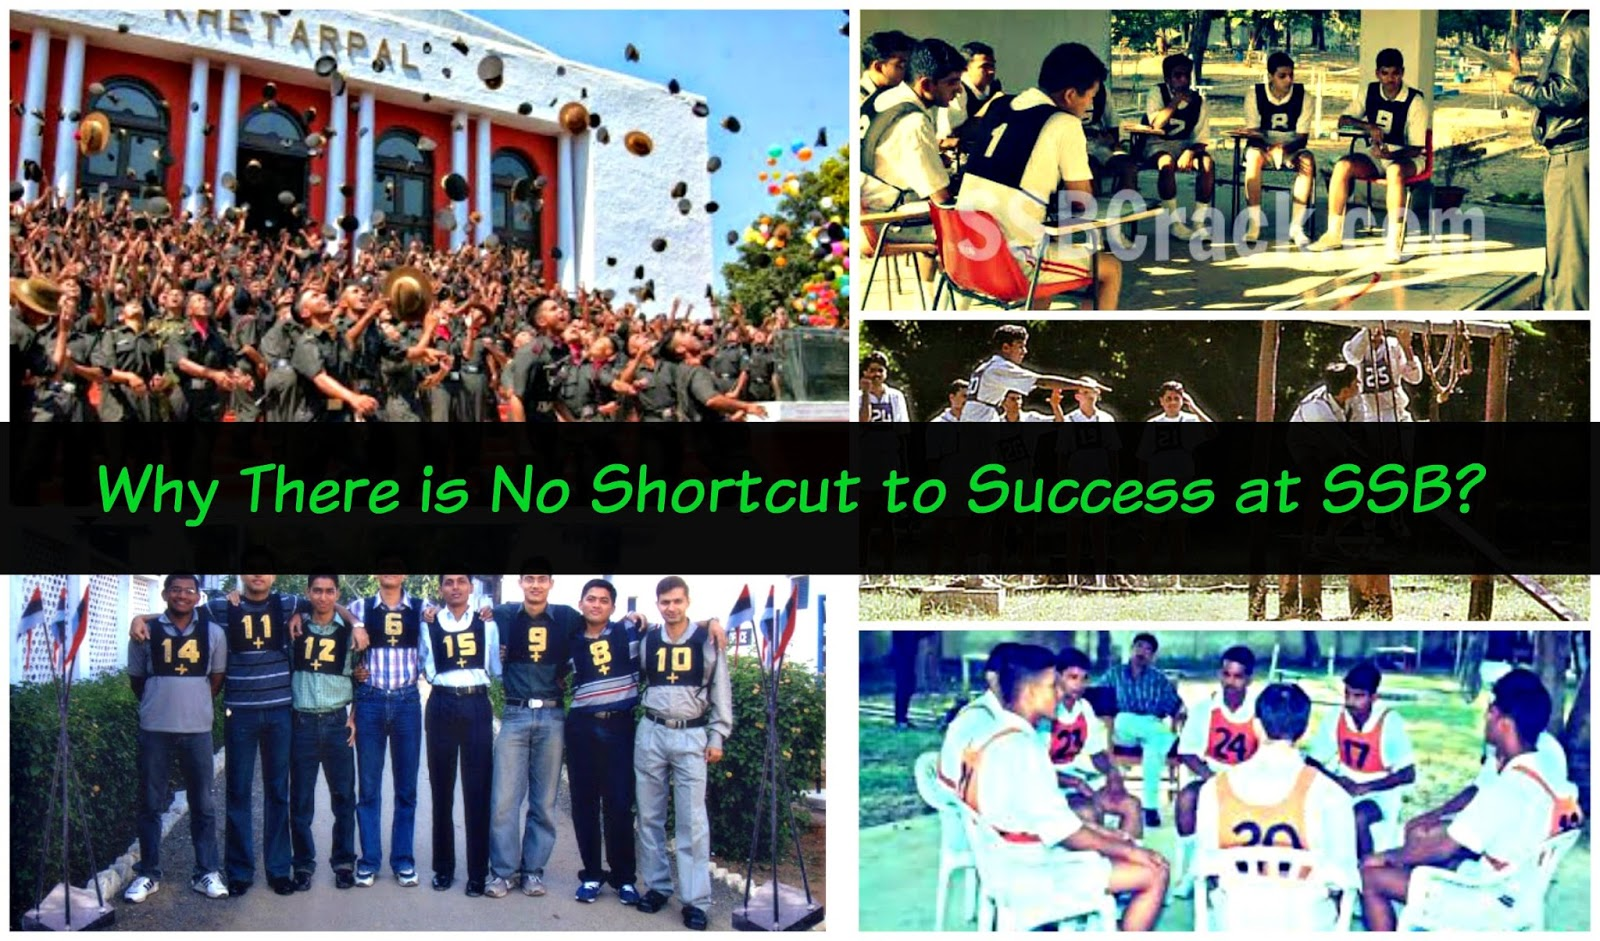 Why There is No Shortcut to Success at SSB?